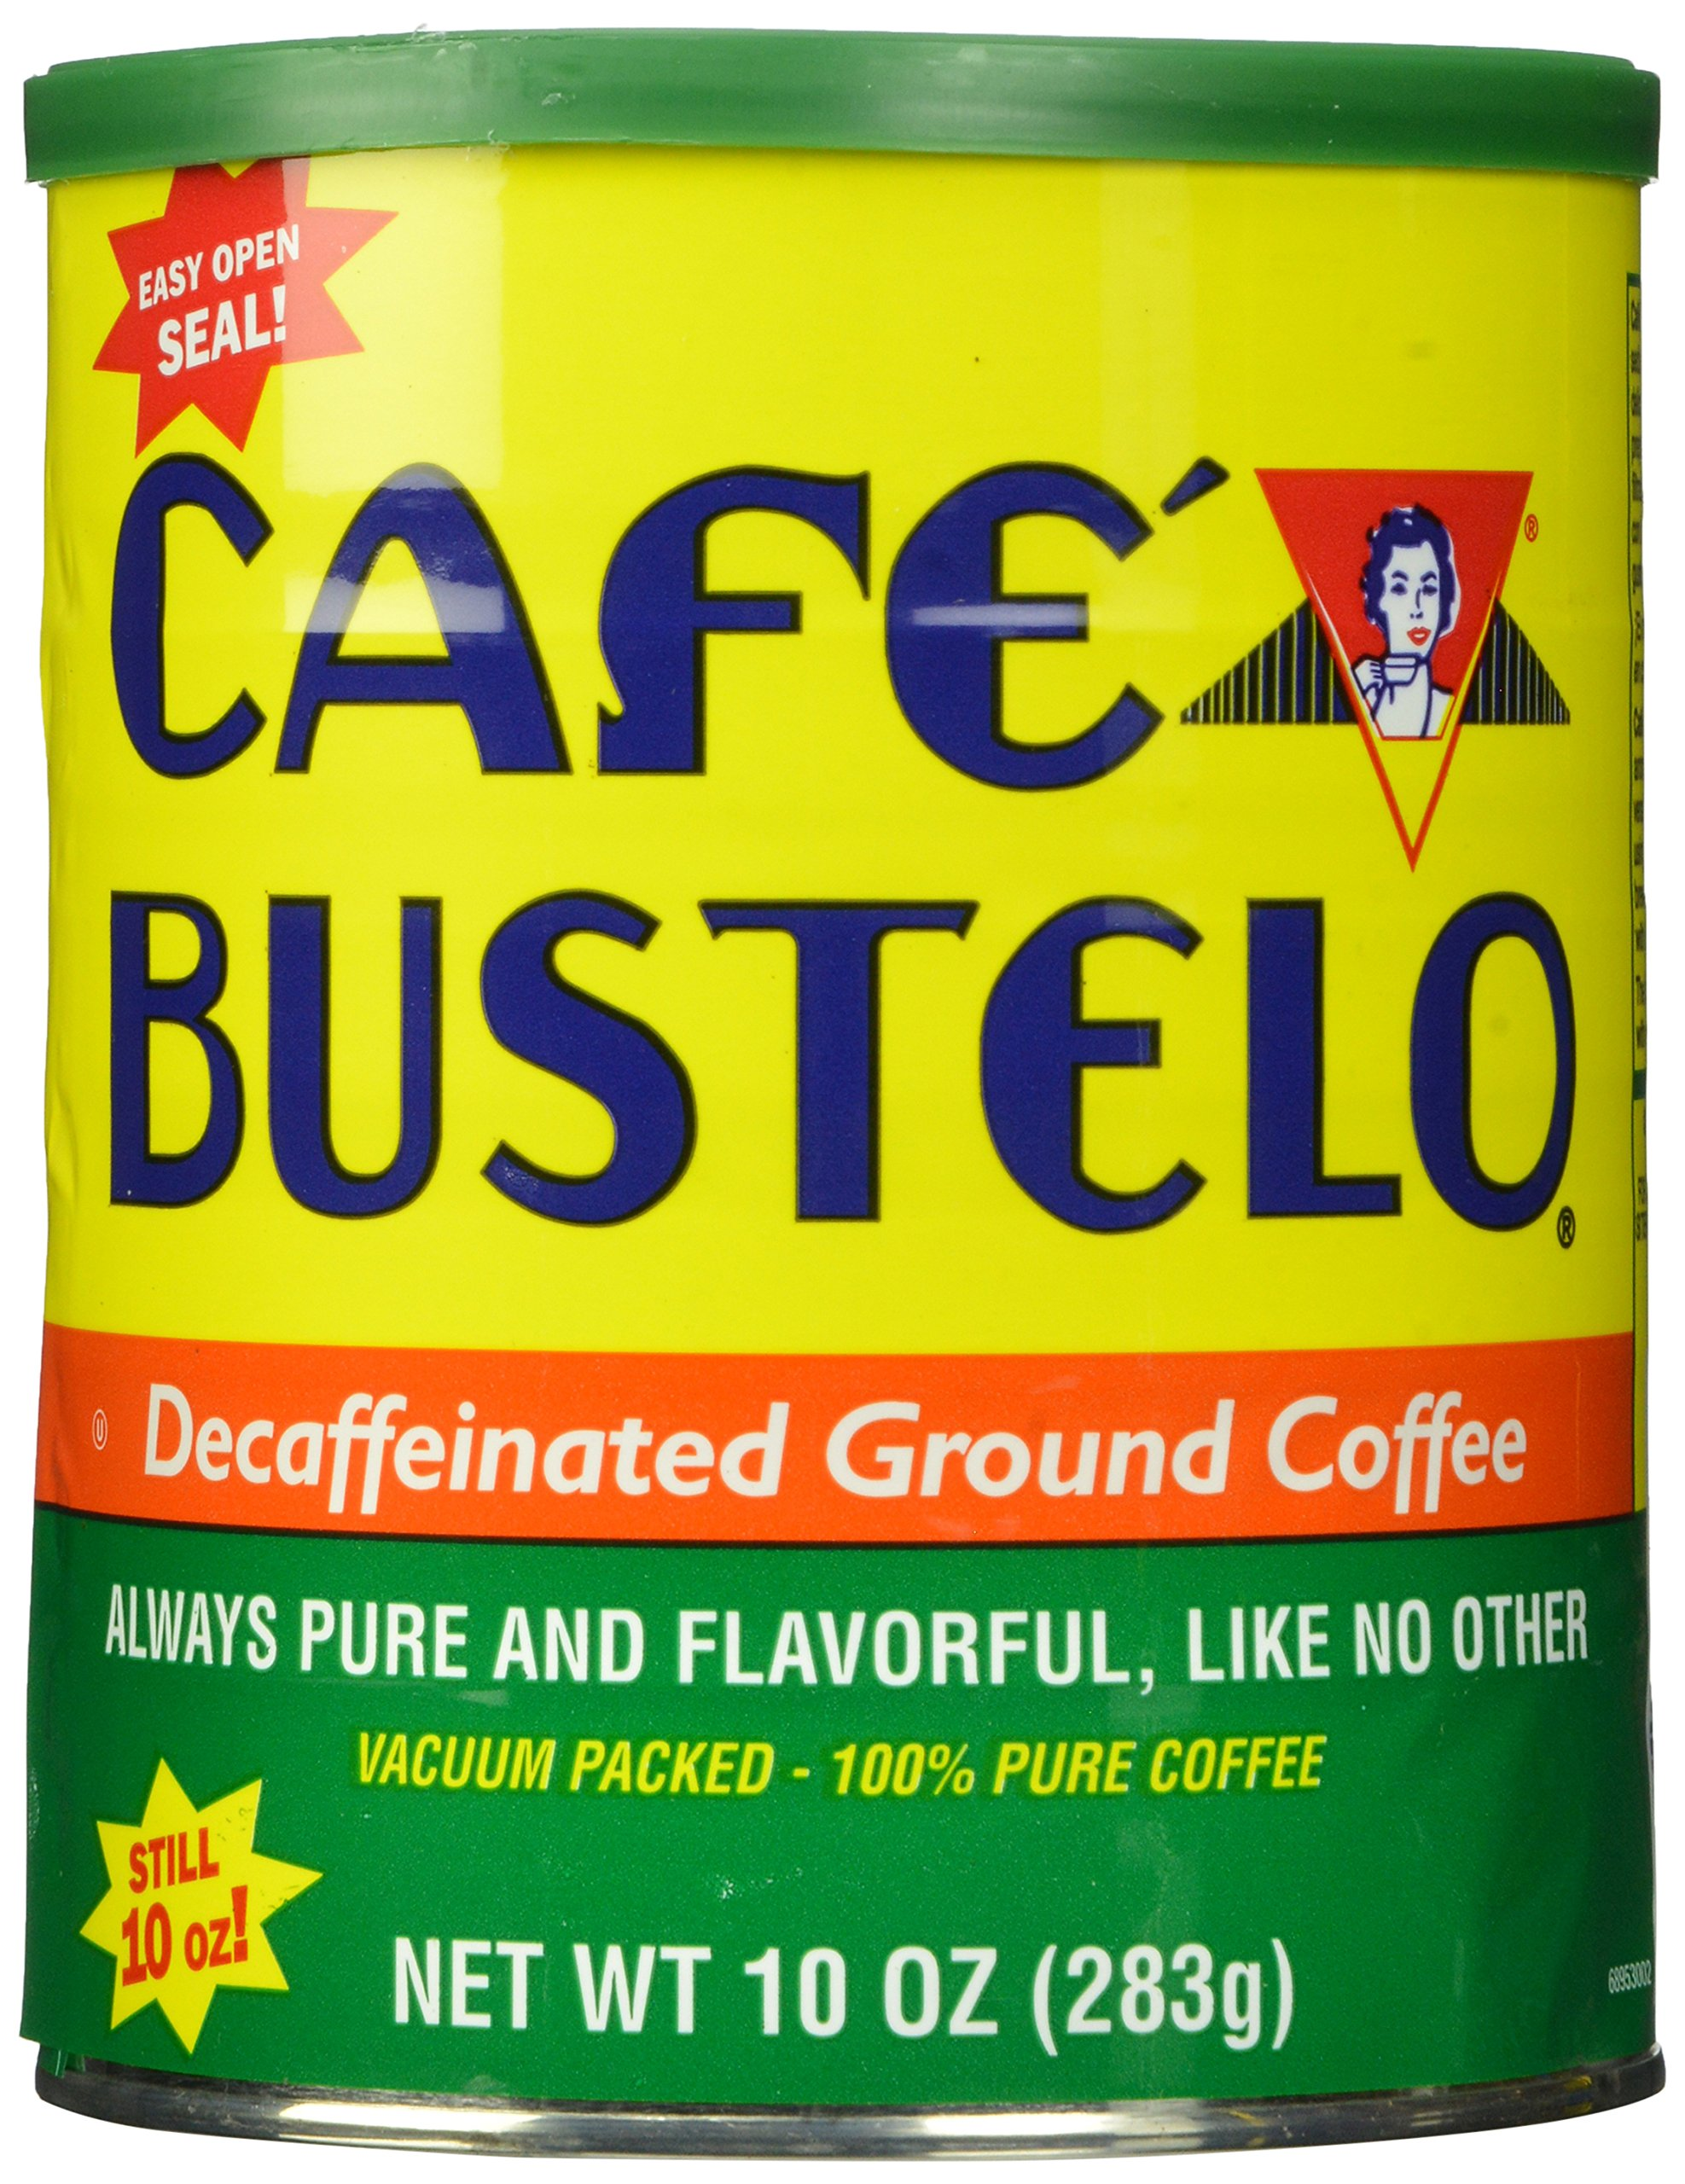 Cafe Bustelo Decaffeinated Coffee, 10 Ounce Cans (Pack of 12), Packaging May Vary